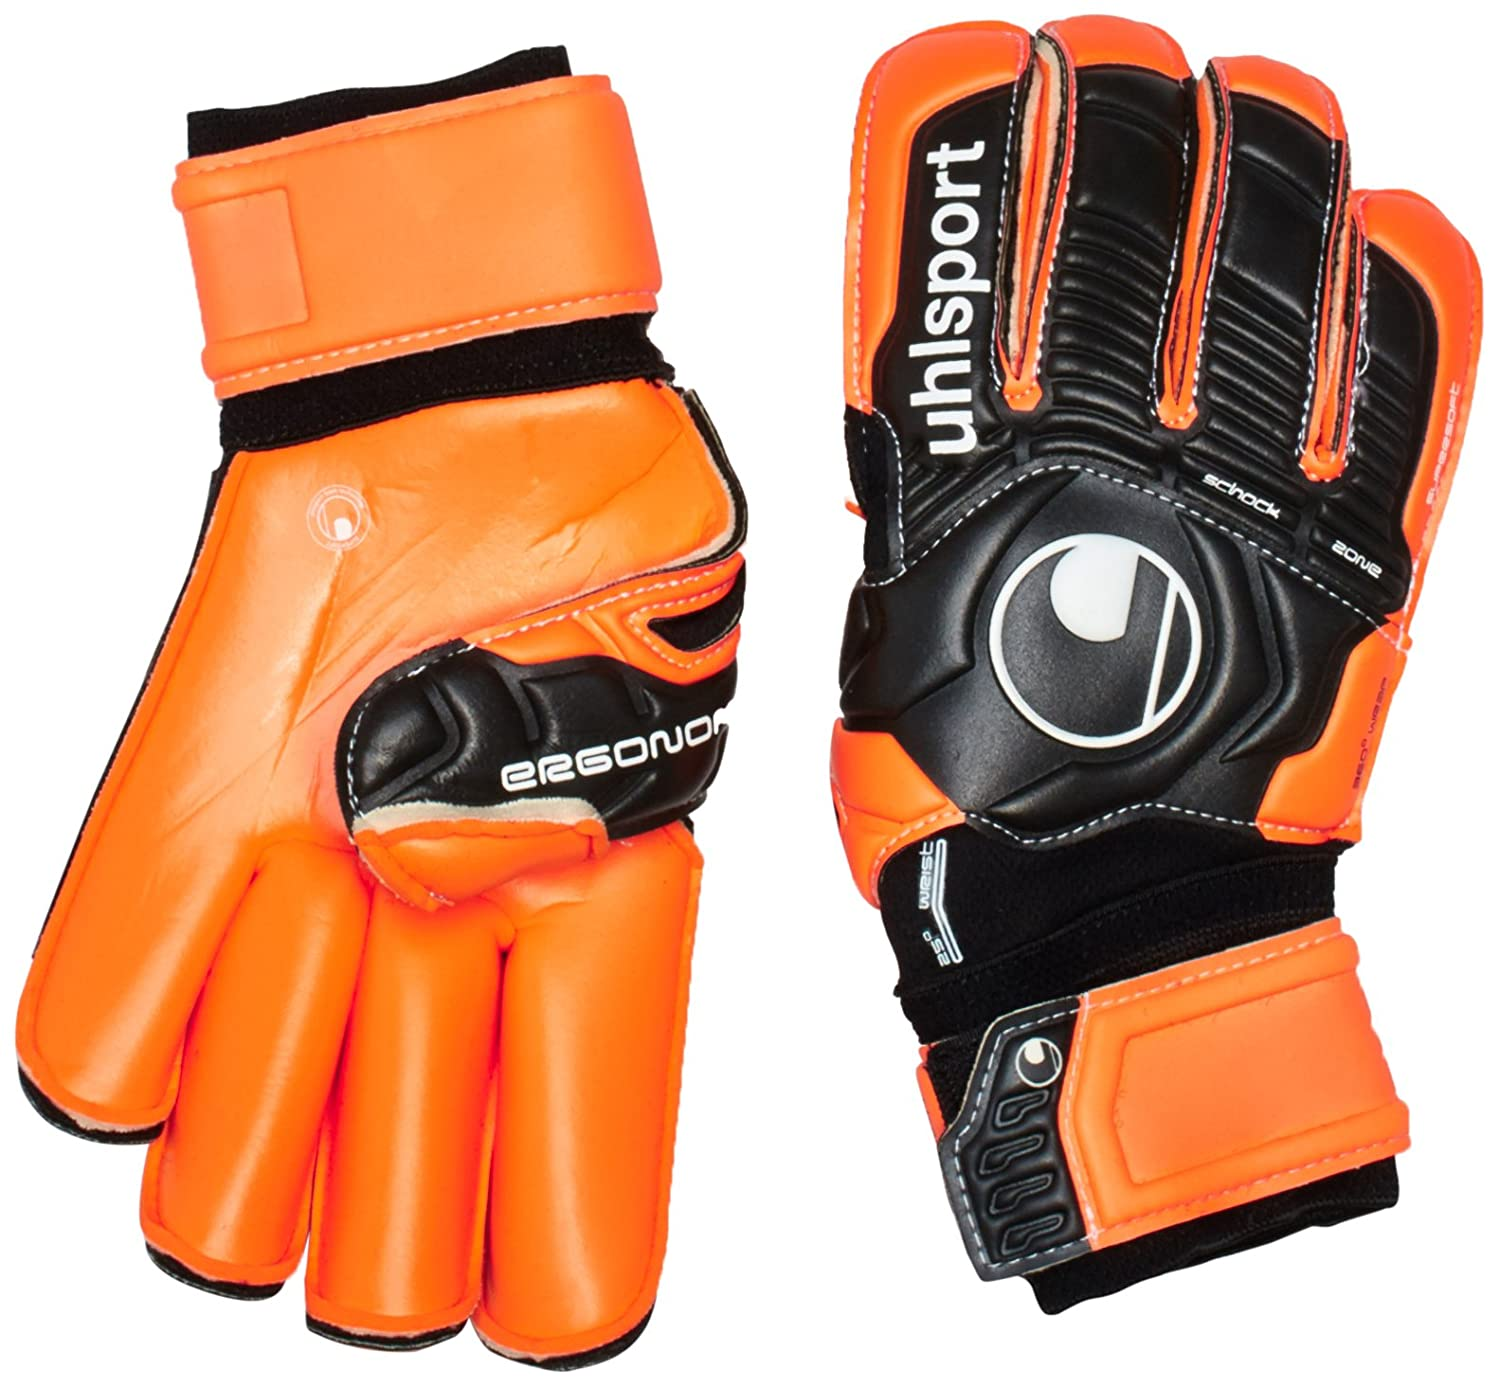 Uhlsport Torwarthandschuhe Ergonomic Supersoft RF